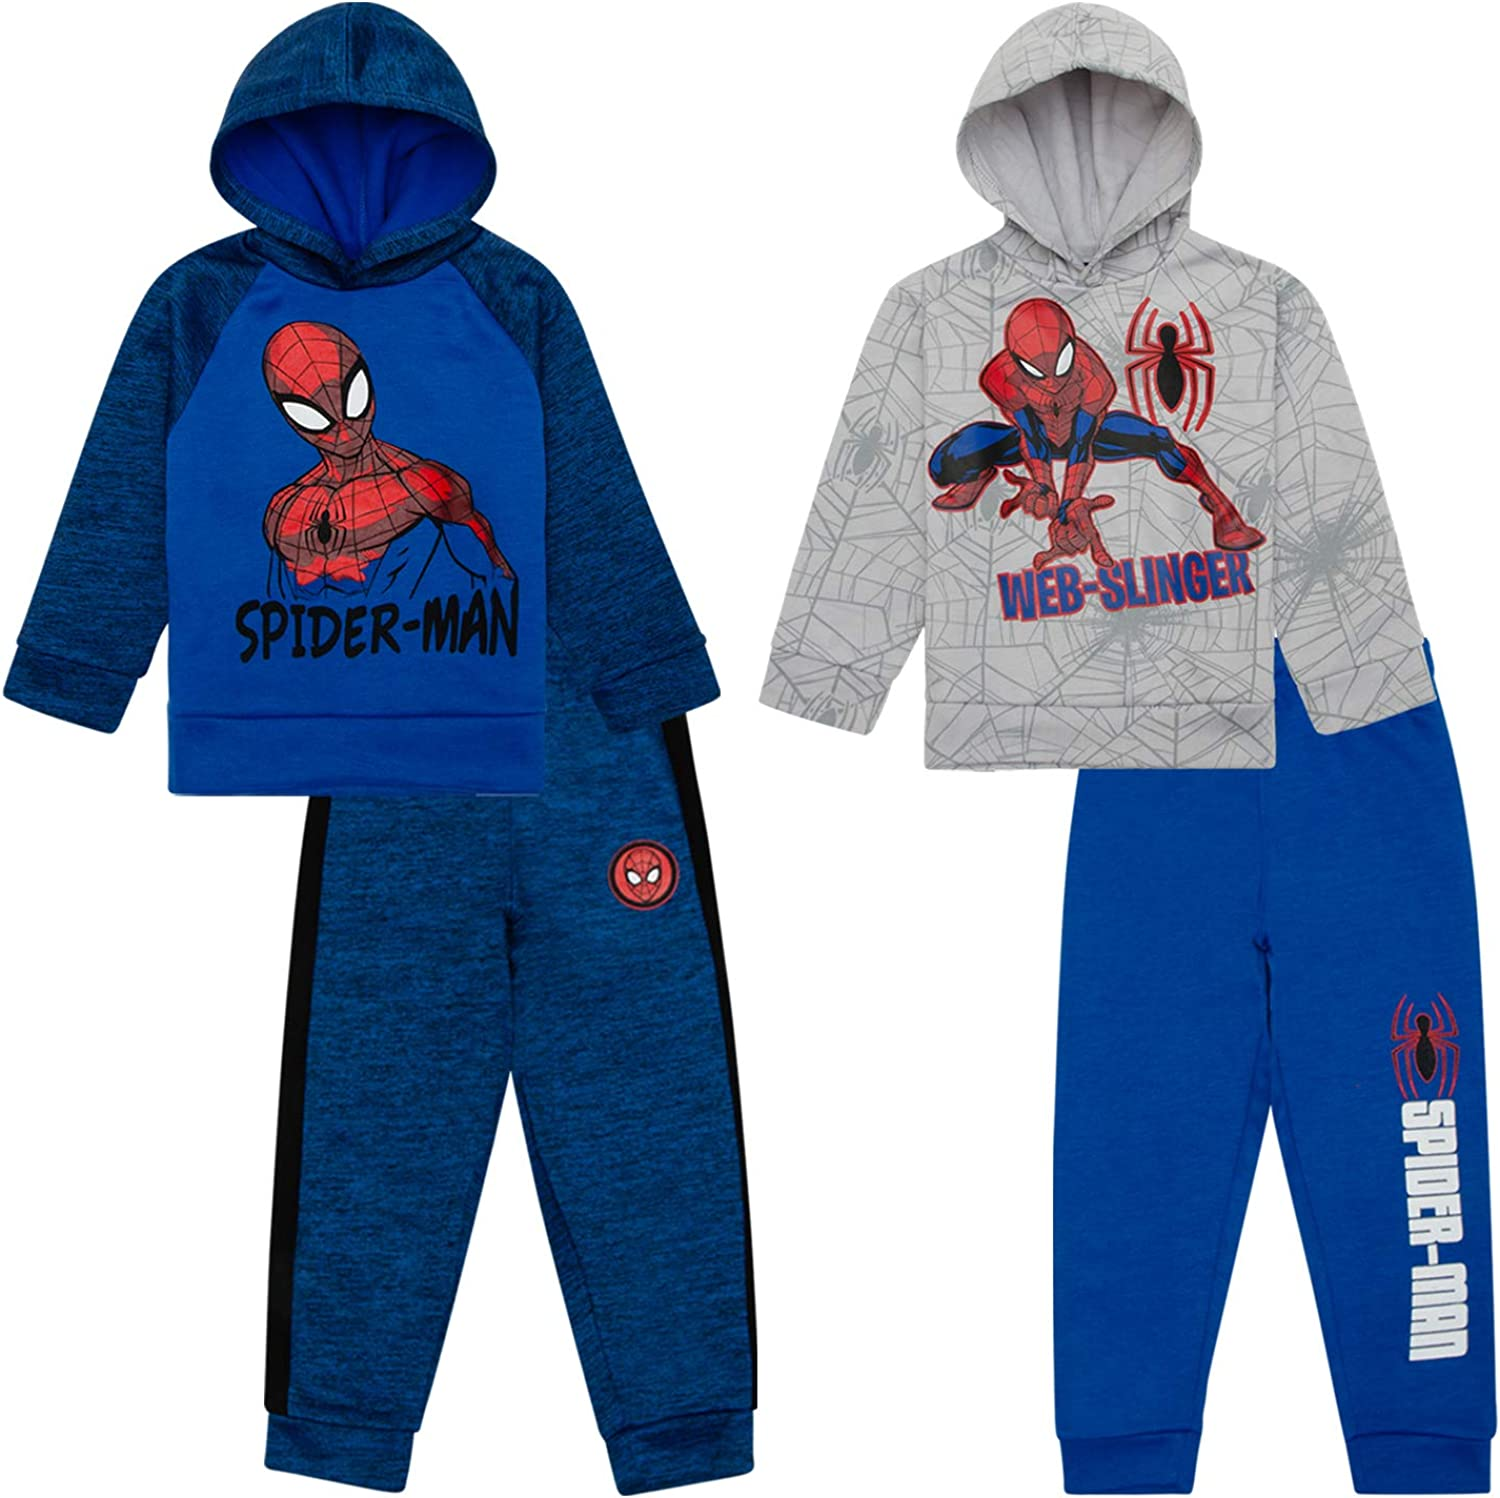 Spiderman Hoodies Sweatshirts & Sweatpants 4 Piece Set, Kids Clothes...